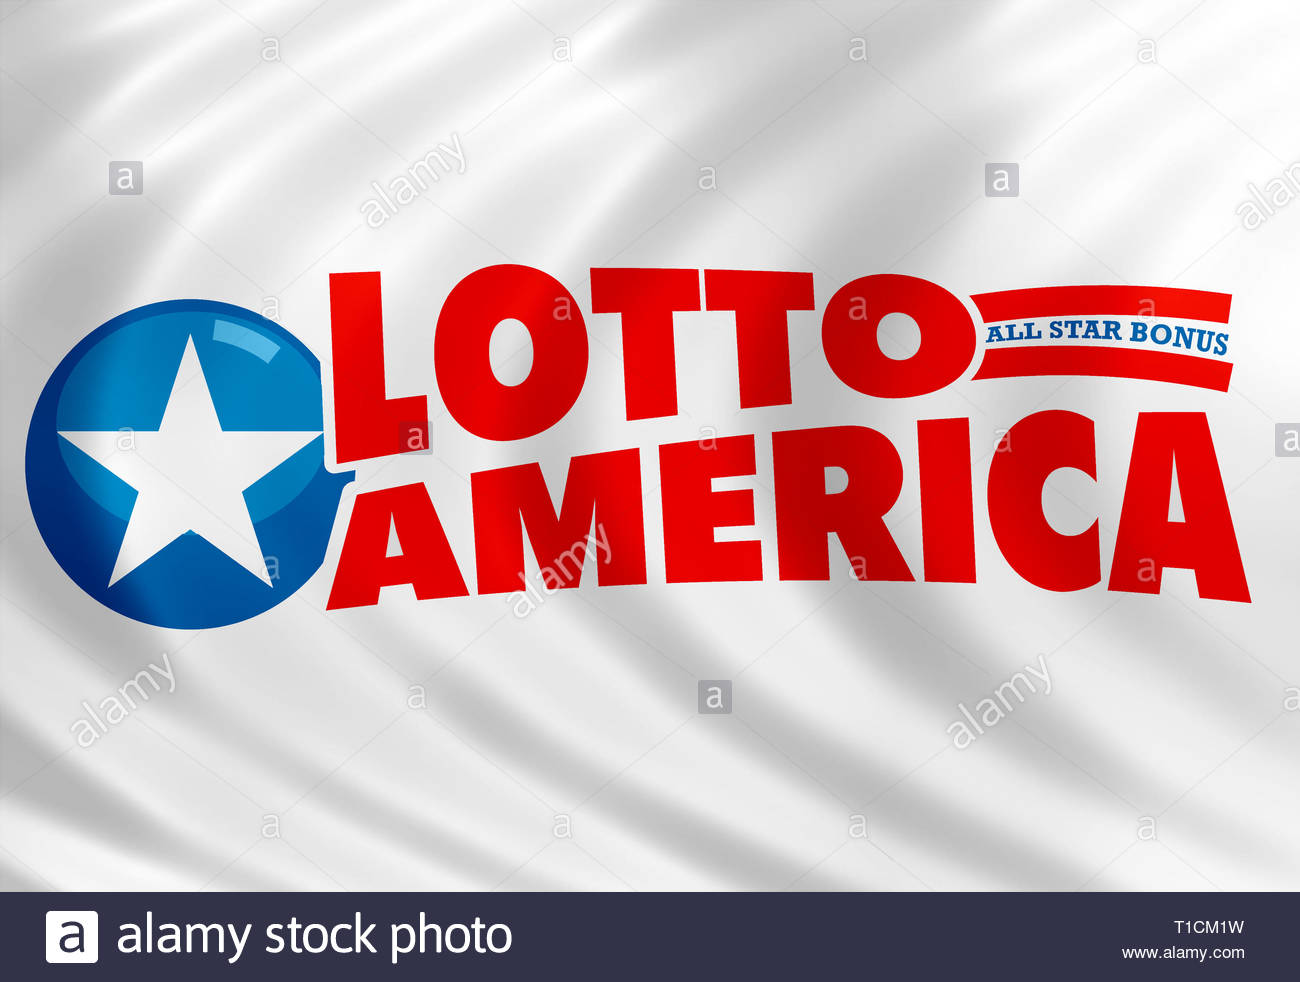 Lotto Sign Stock Photos Lotto Sign Stock Images Alamy